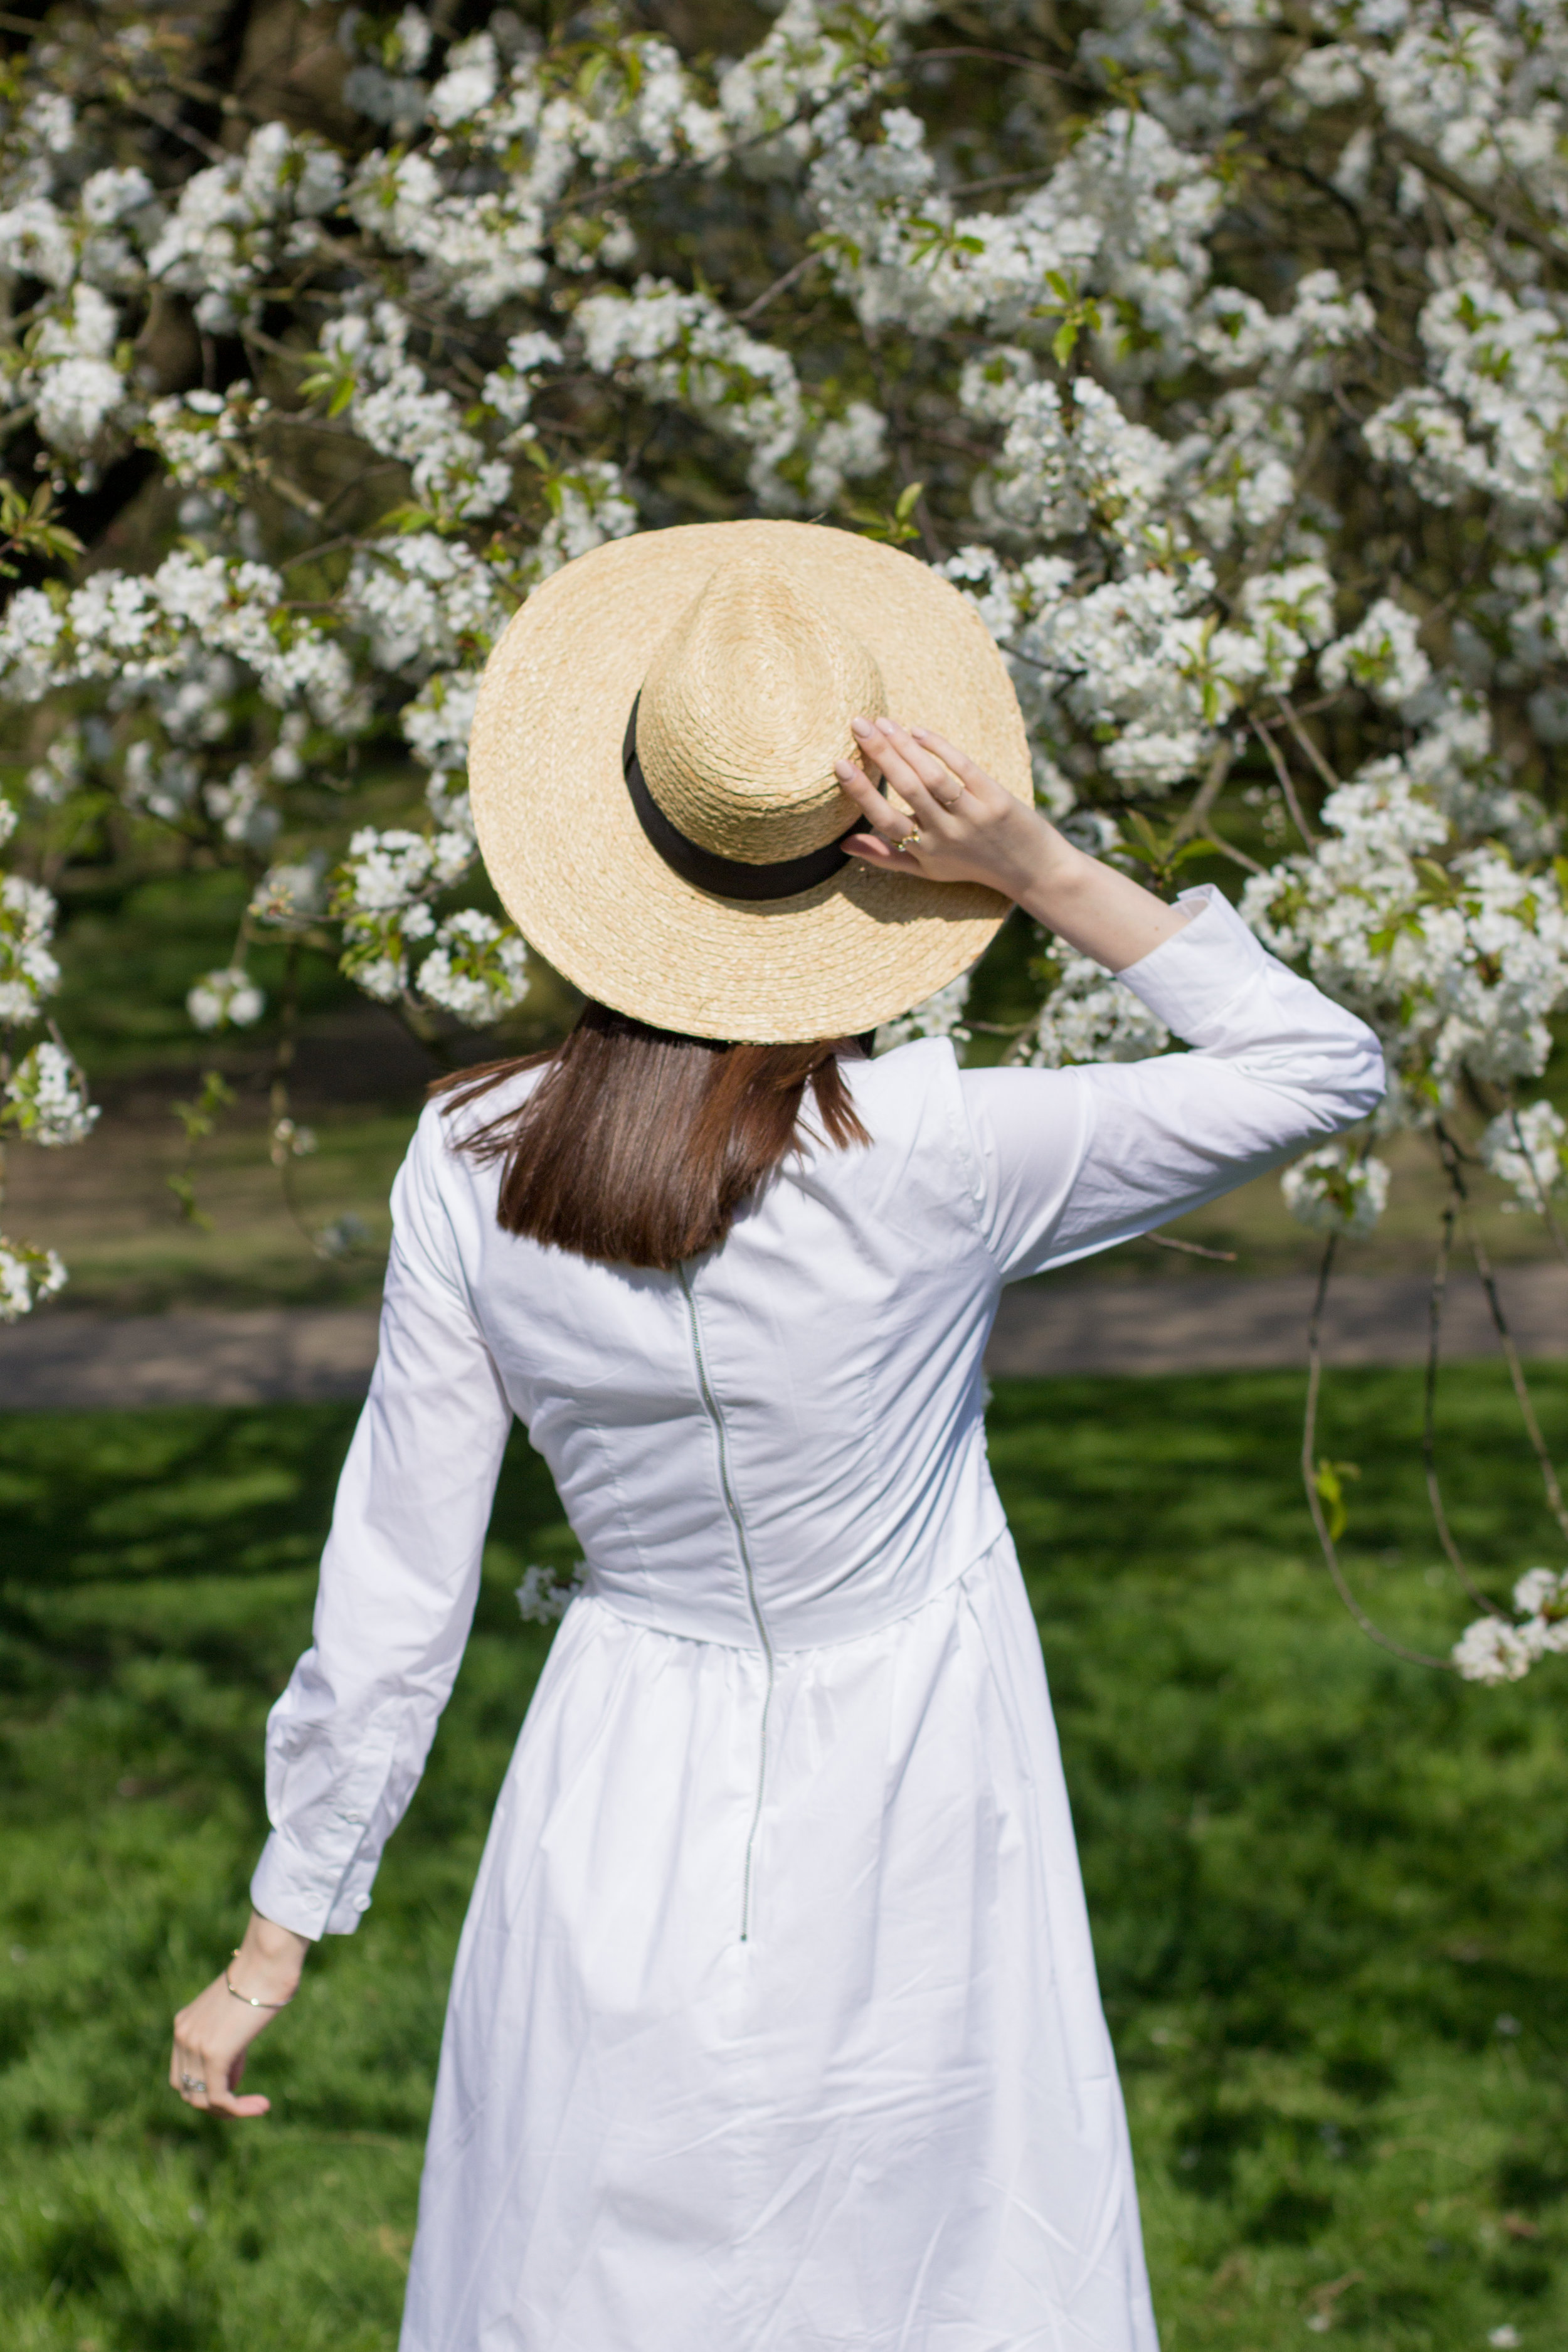 Exploring Kenwood House in Hampstead Heath, London wearing a summery white dress, straw hat, and bold sunglasses | Sundays and Somedays